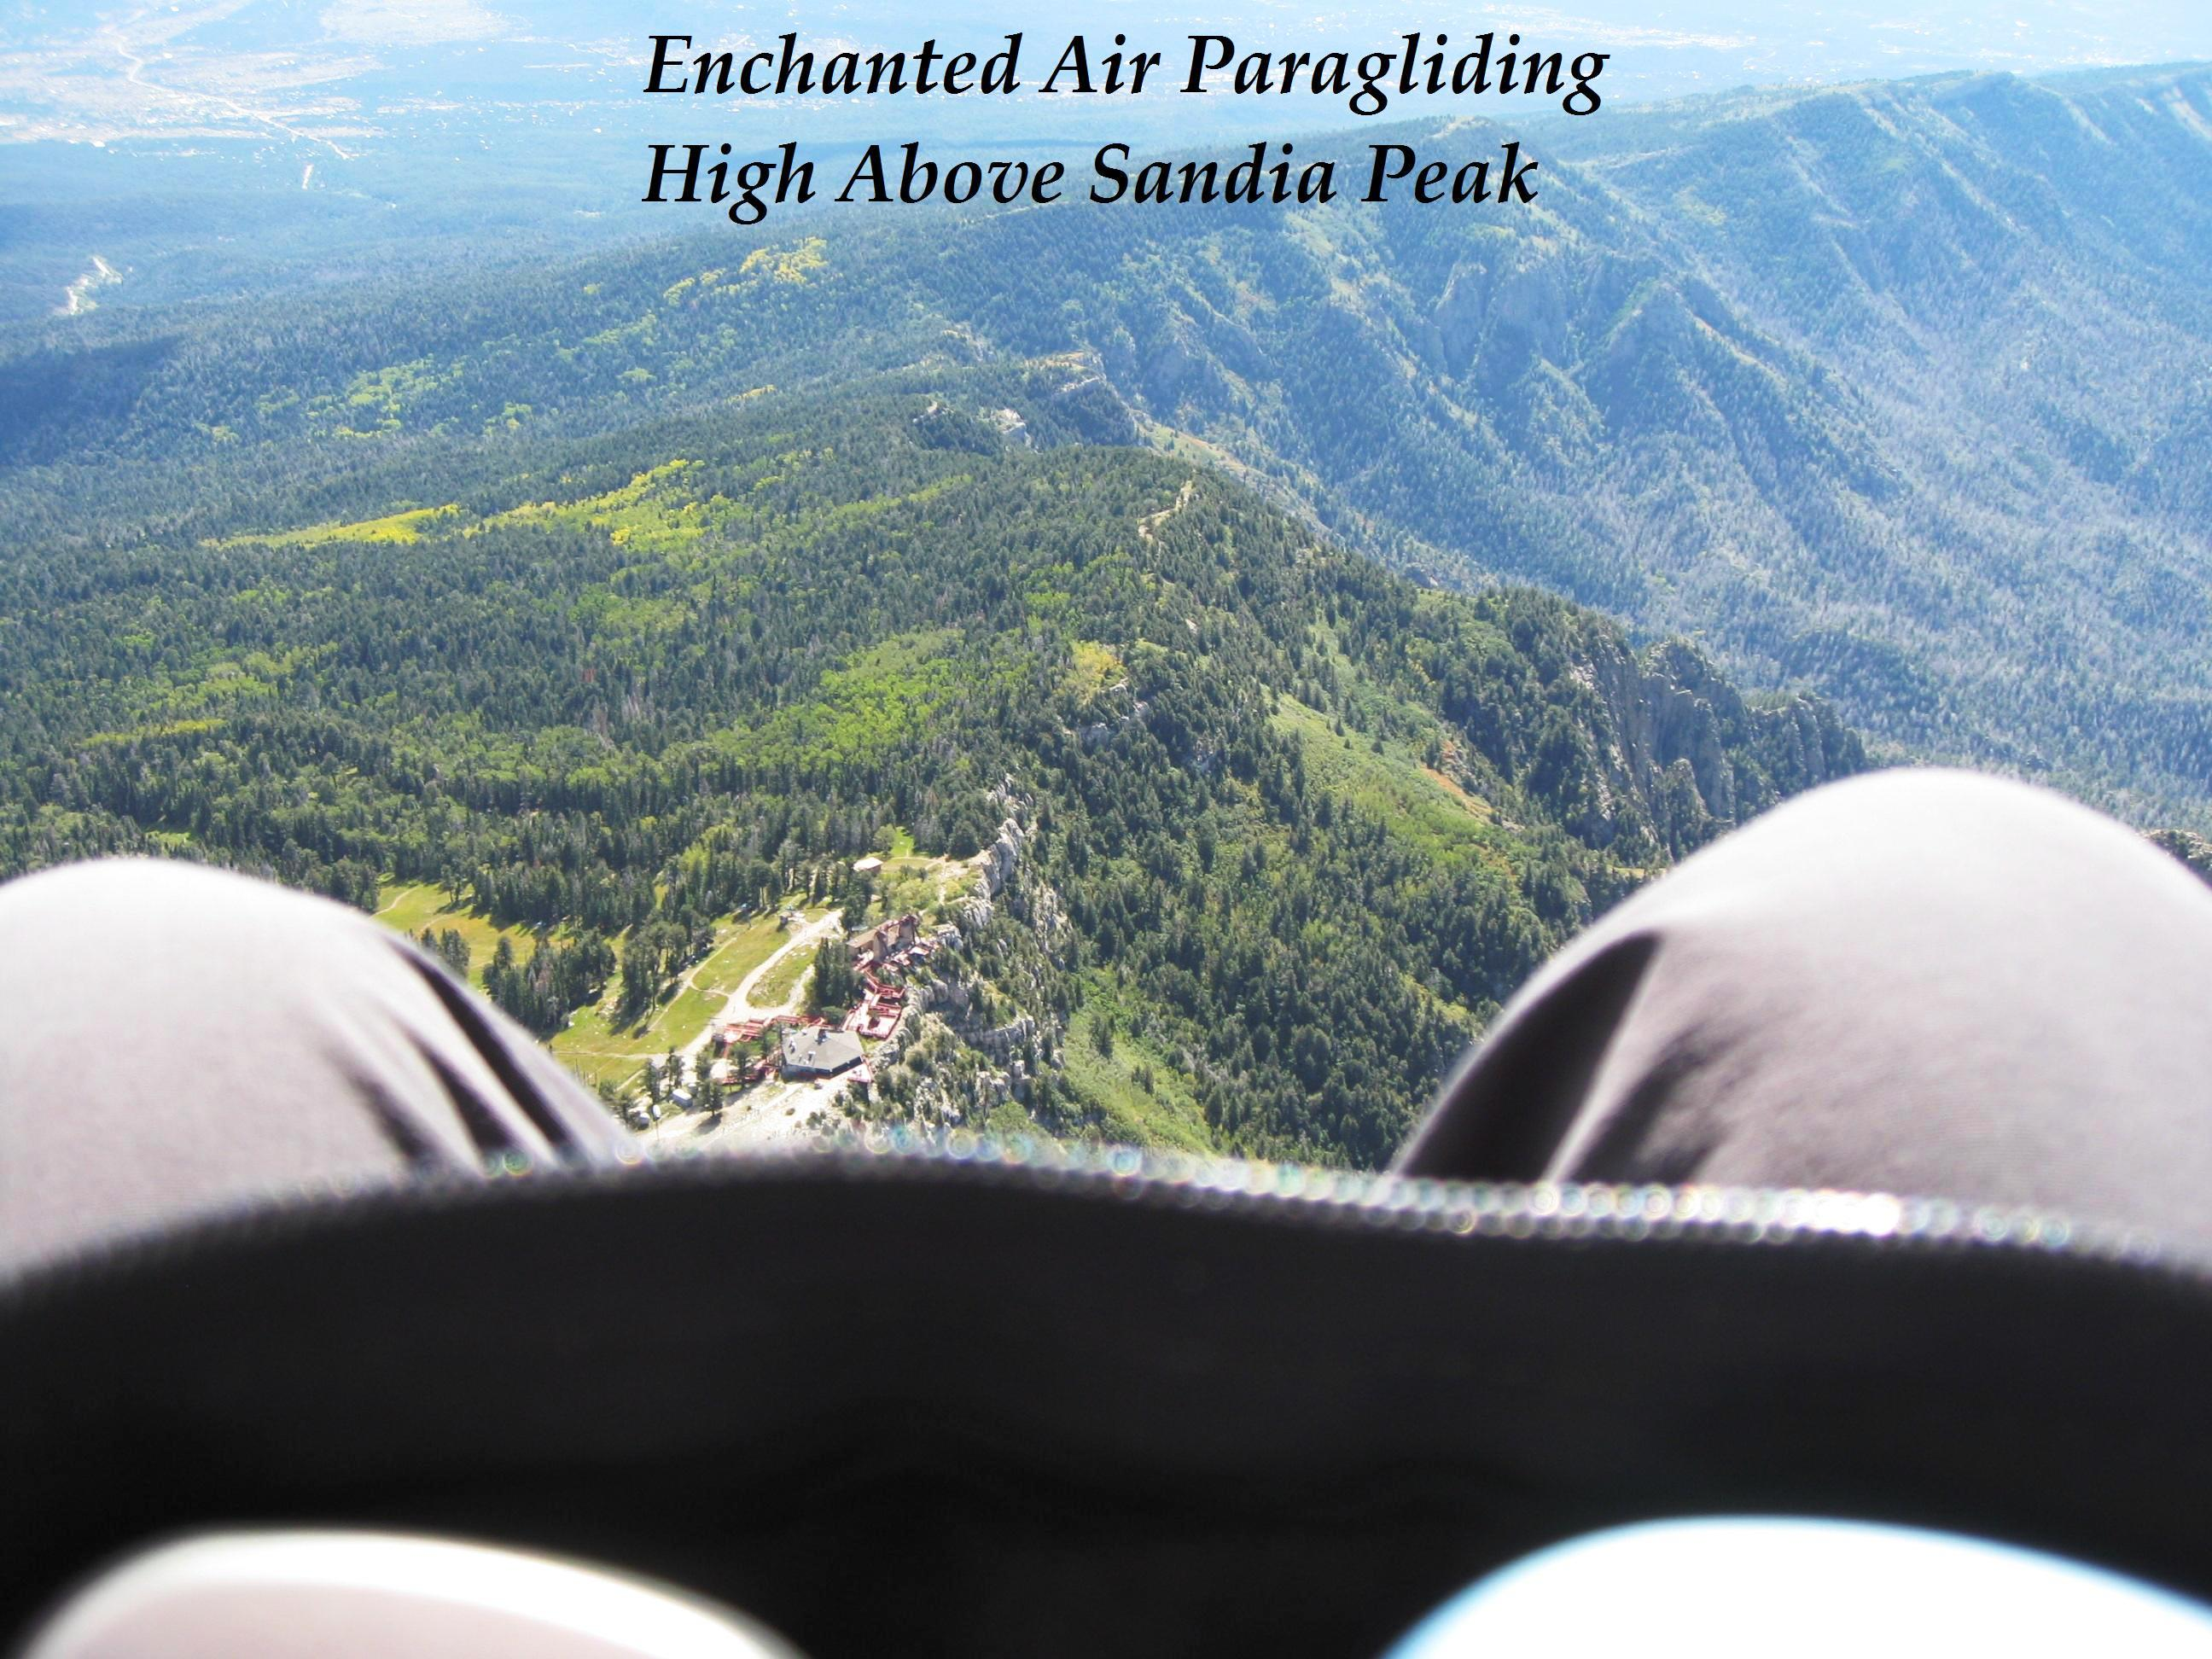 Frequently Asked Questions - Enchanted Air Paragliding